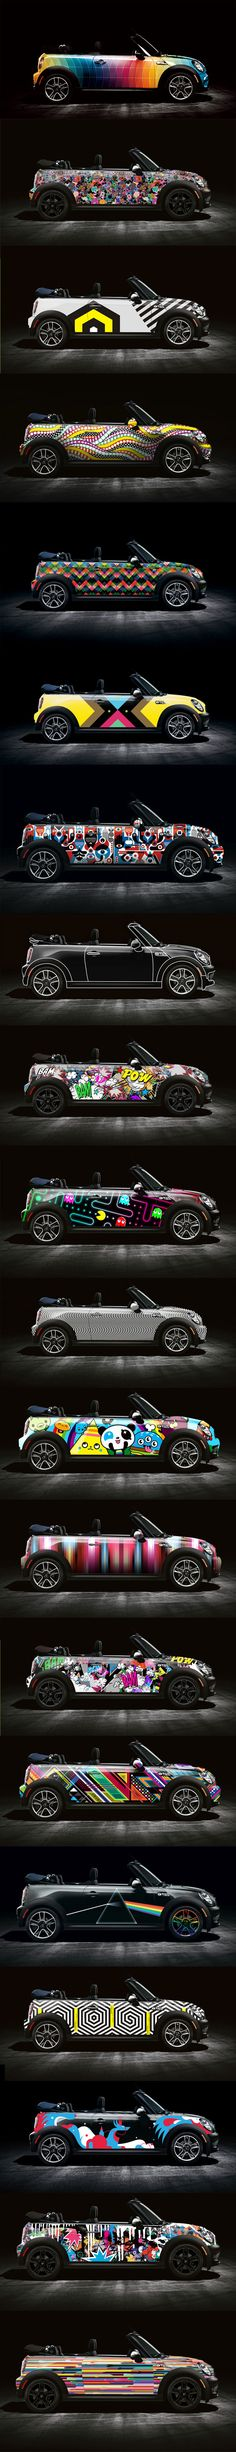 Mini Cooper Cool Wraps ♥ App for Mini Cooper Warning Lights, is now in App Store.  App info website: Carwarninglight.com